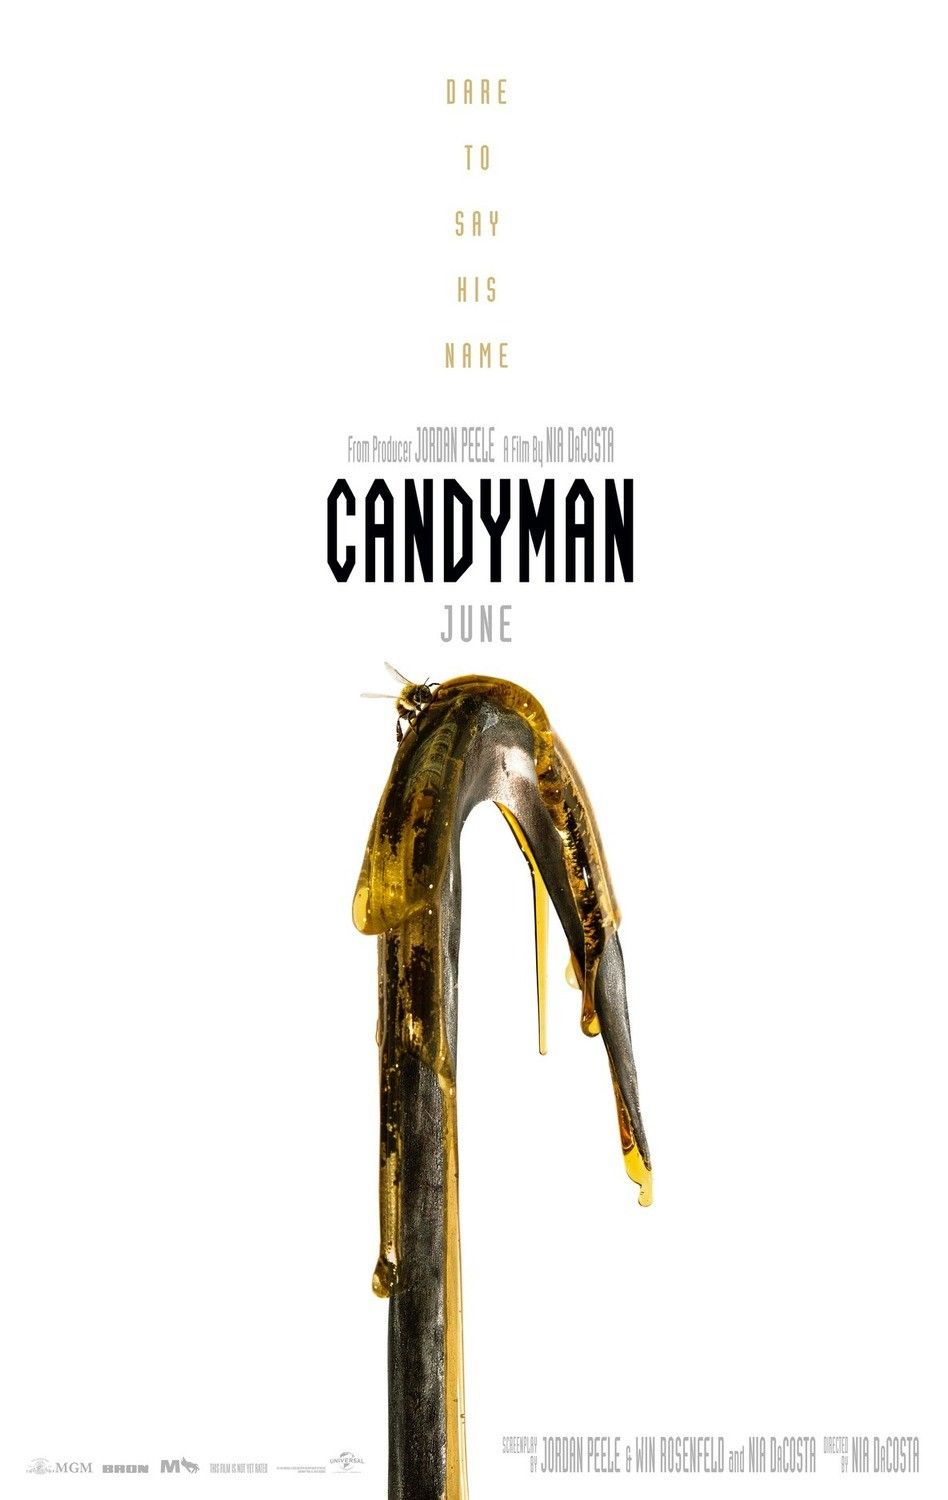 First Teaser Poster For The Remake Of Candyman Candyman